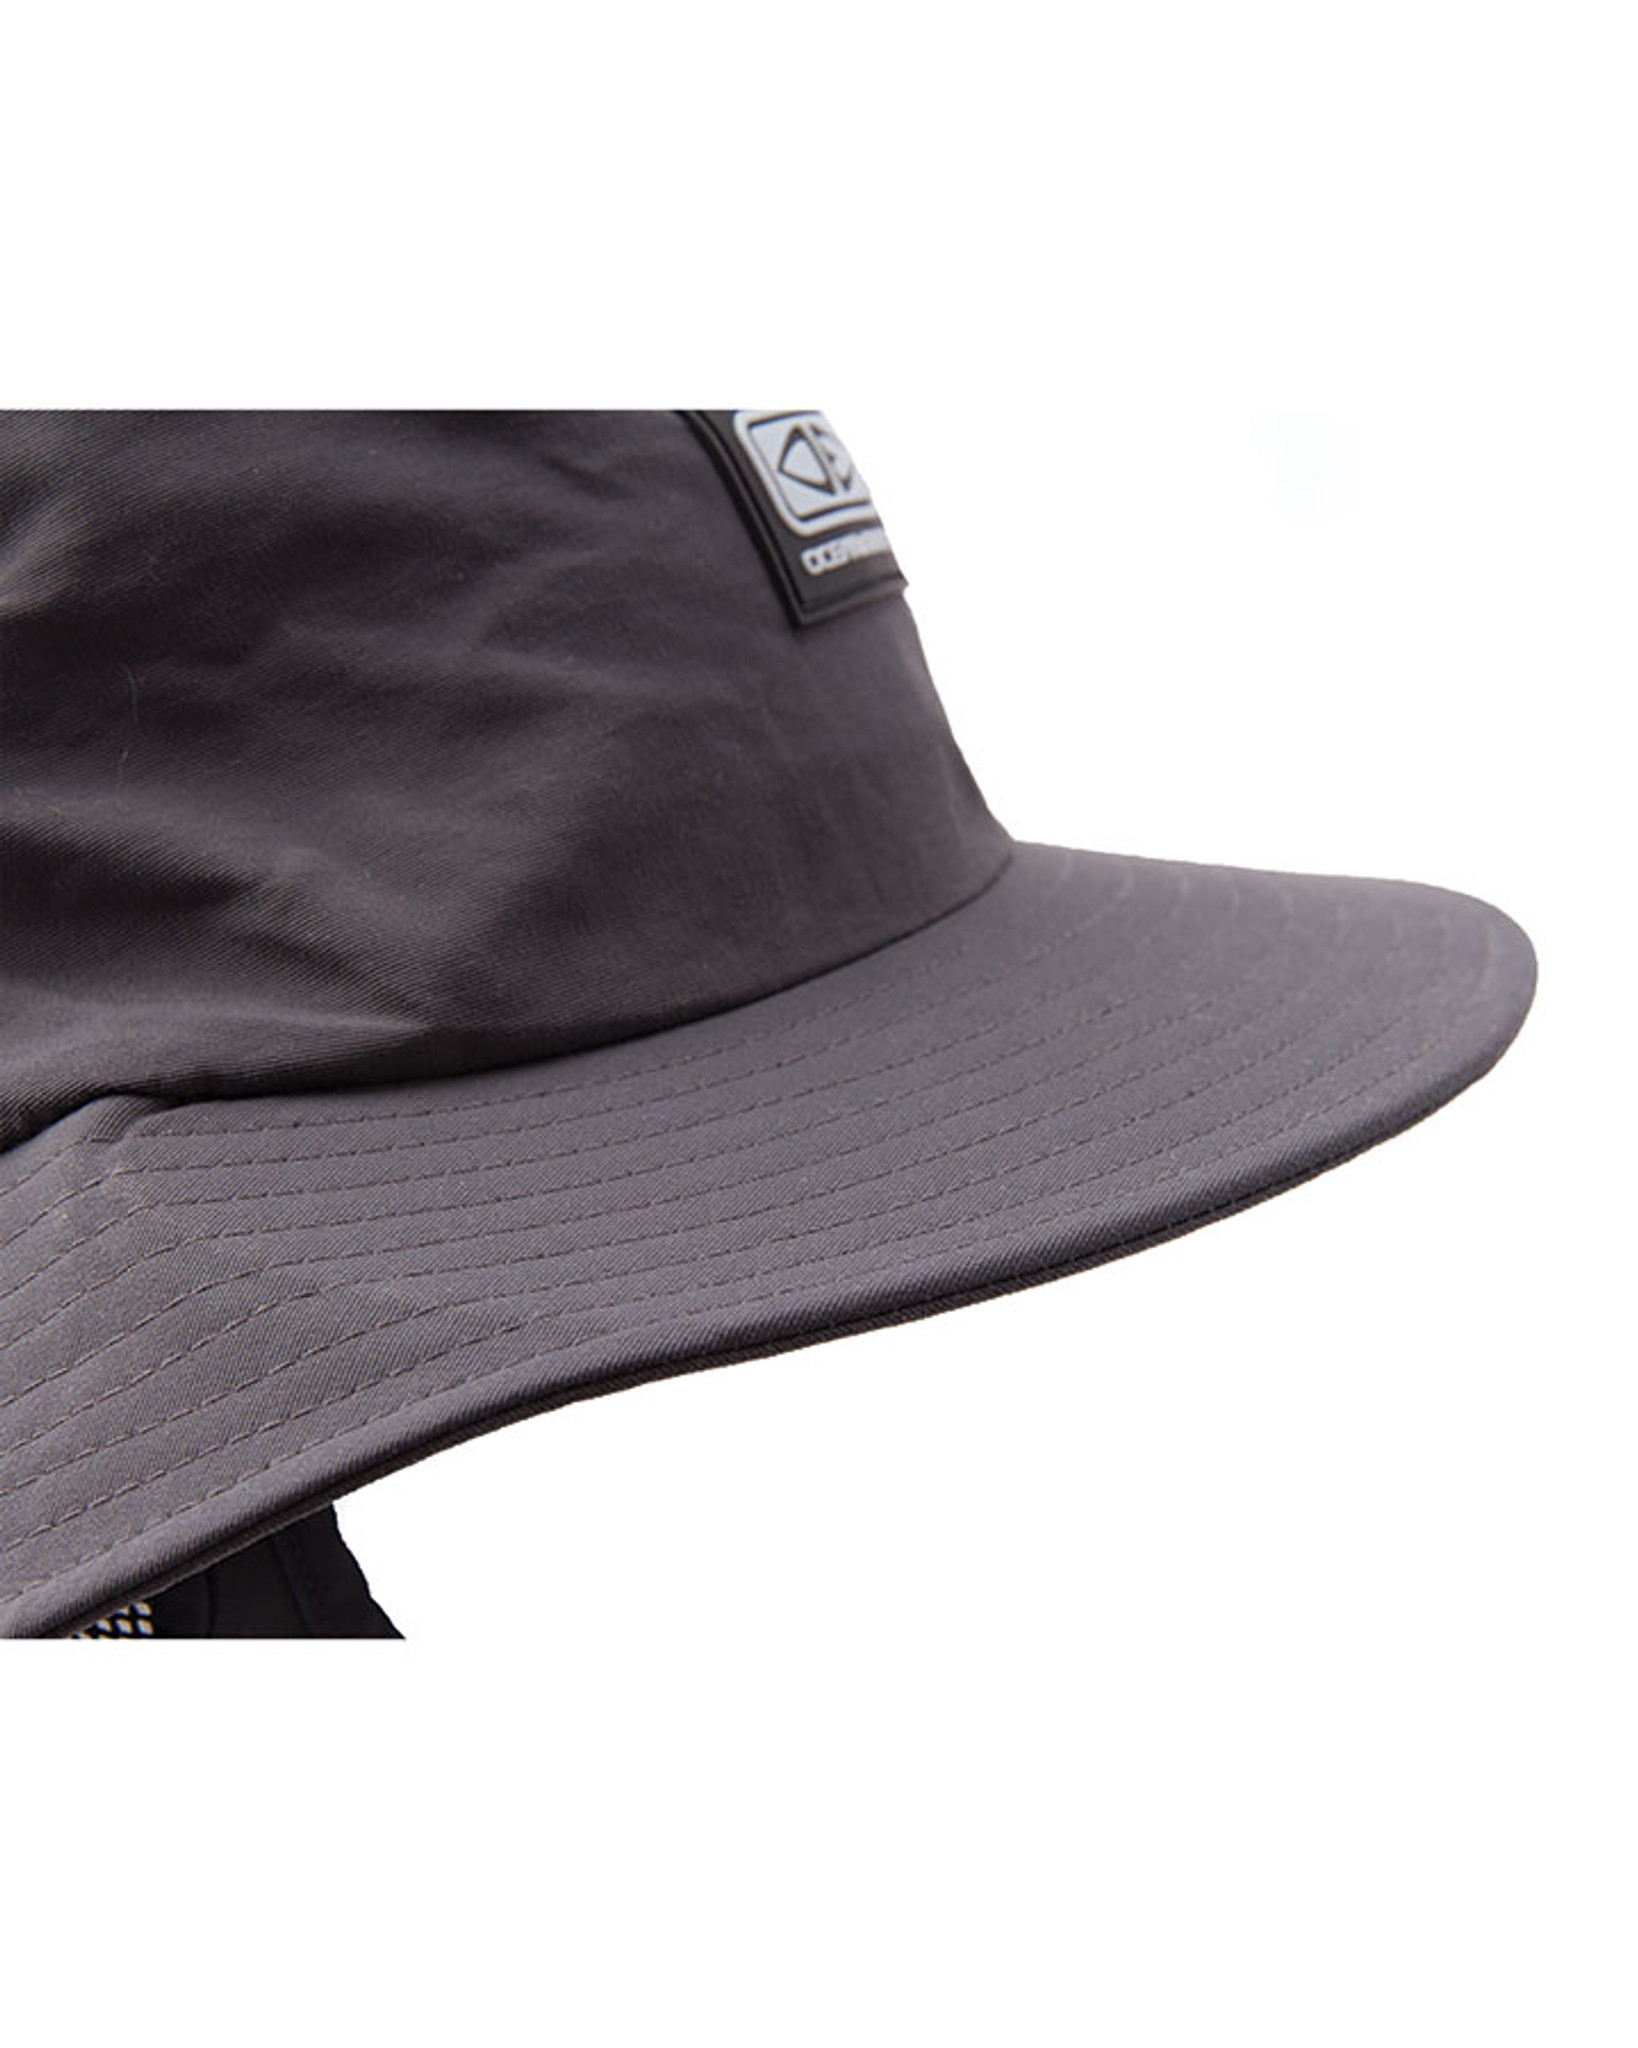 a32df6445ae Boys Indo Stiff Peak Surf Hat - Black - Ocean   Earth